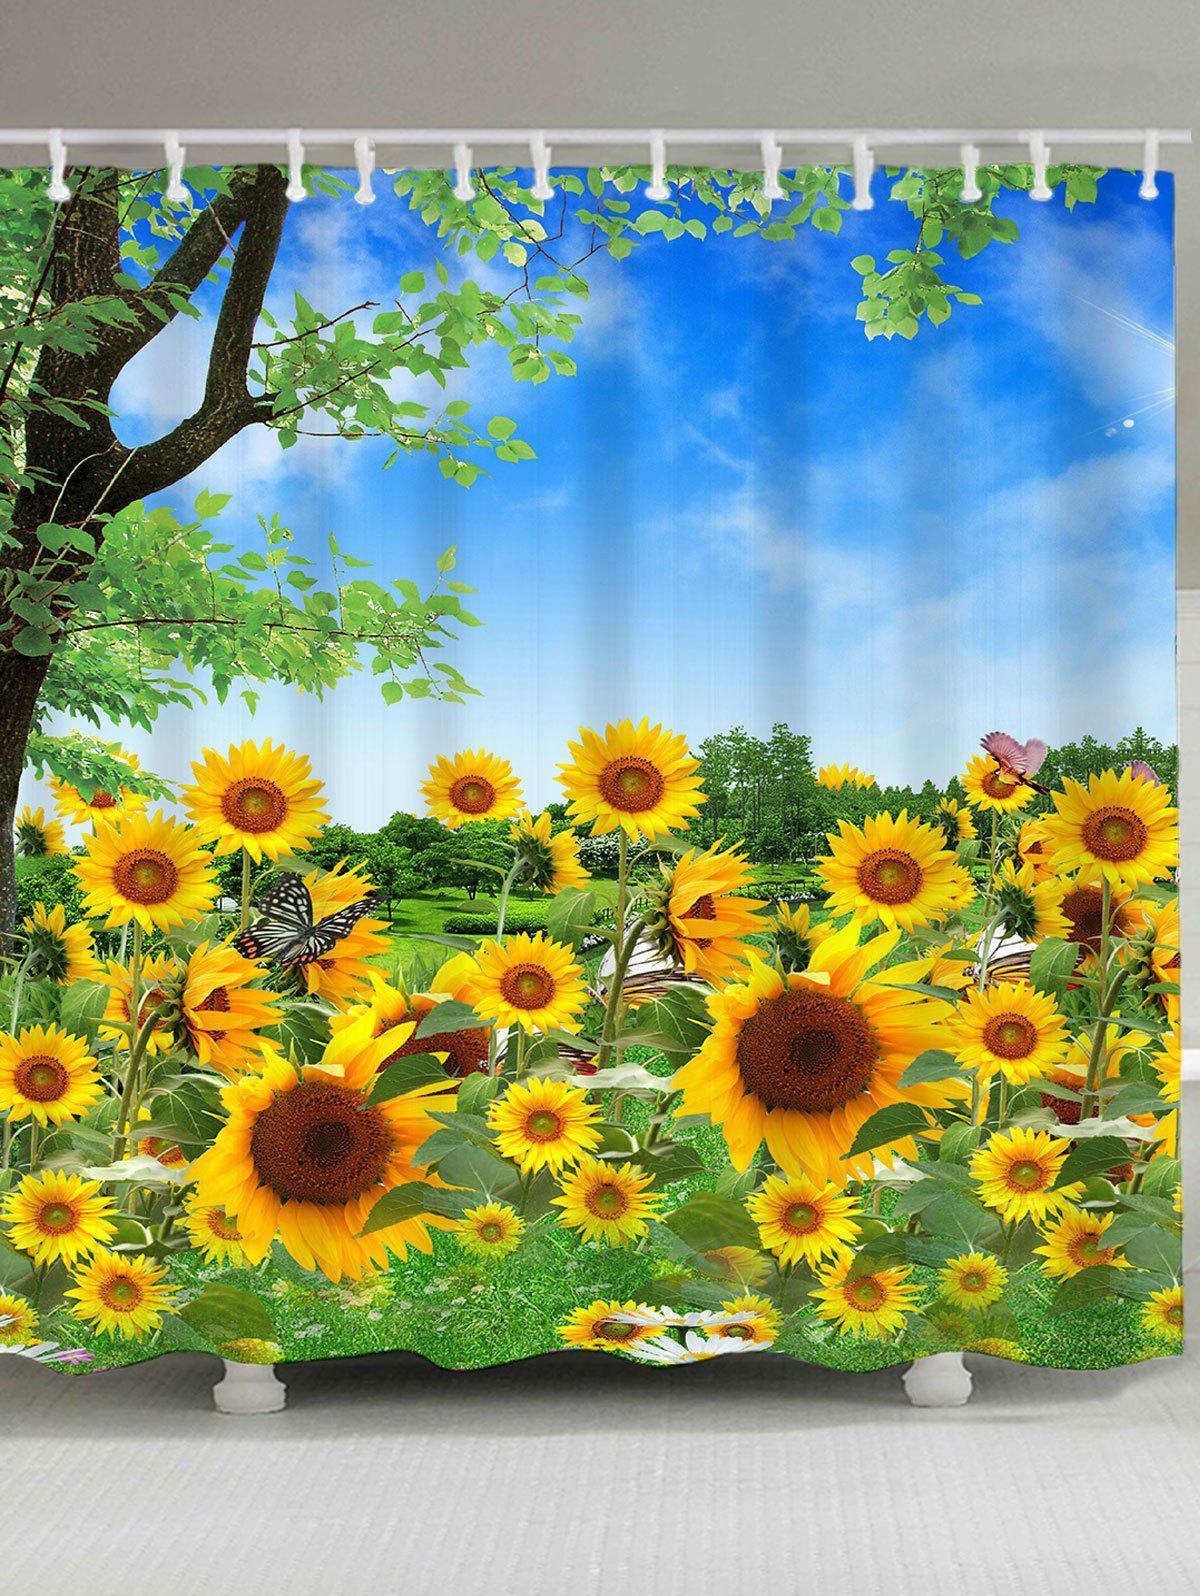 Waterproof Trees and Sunflowers Pattern Shower Curtain bamboo trees waterproof shower curtain